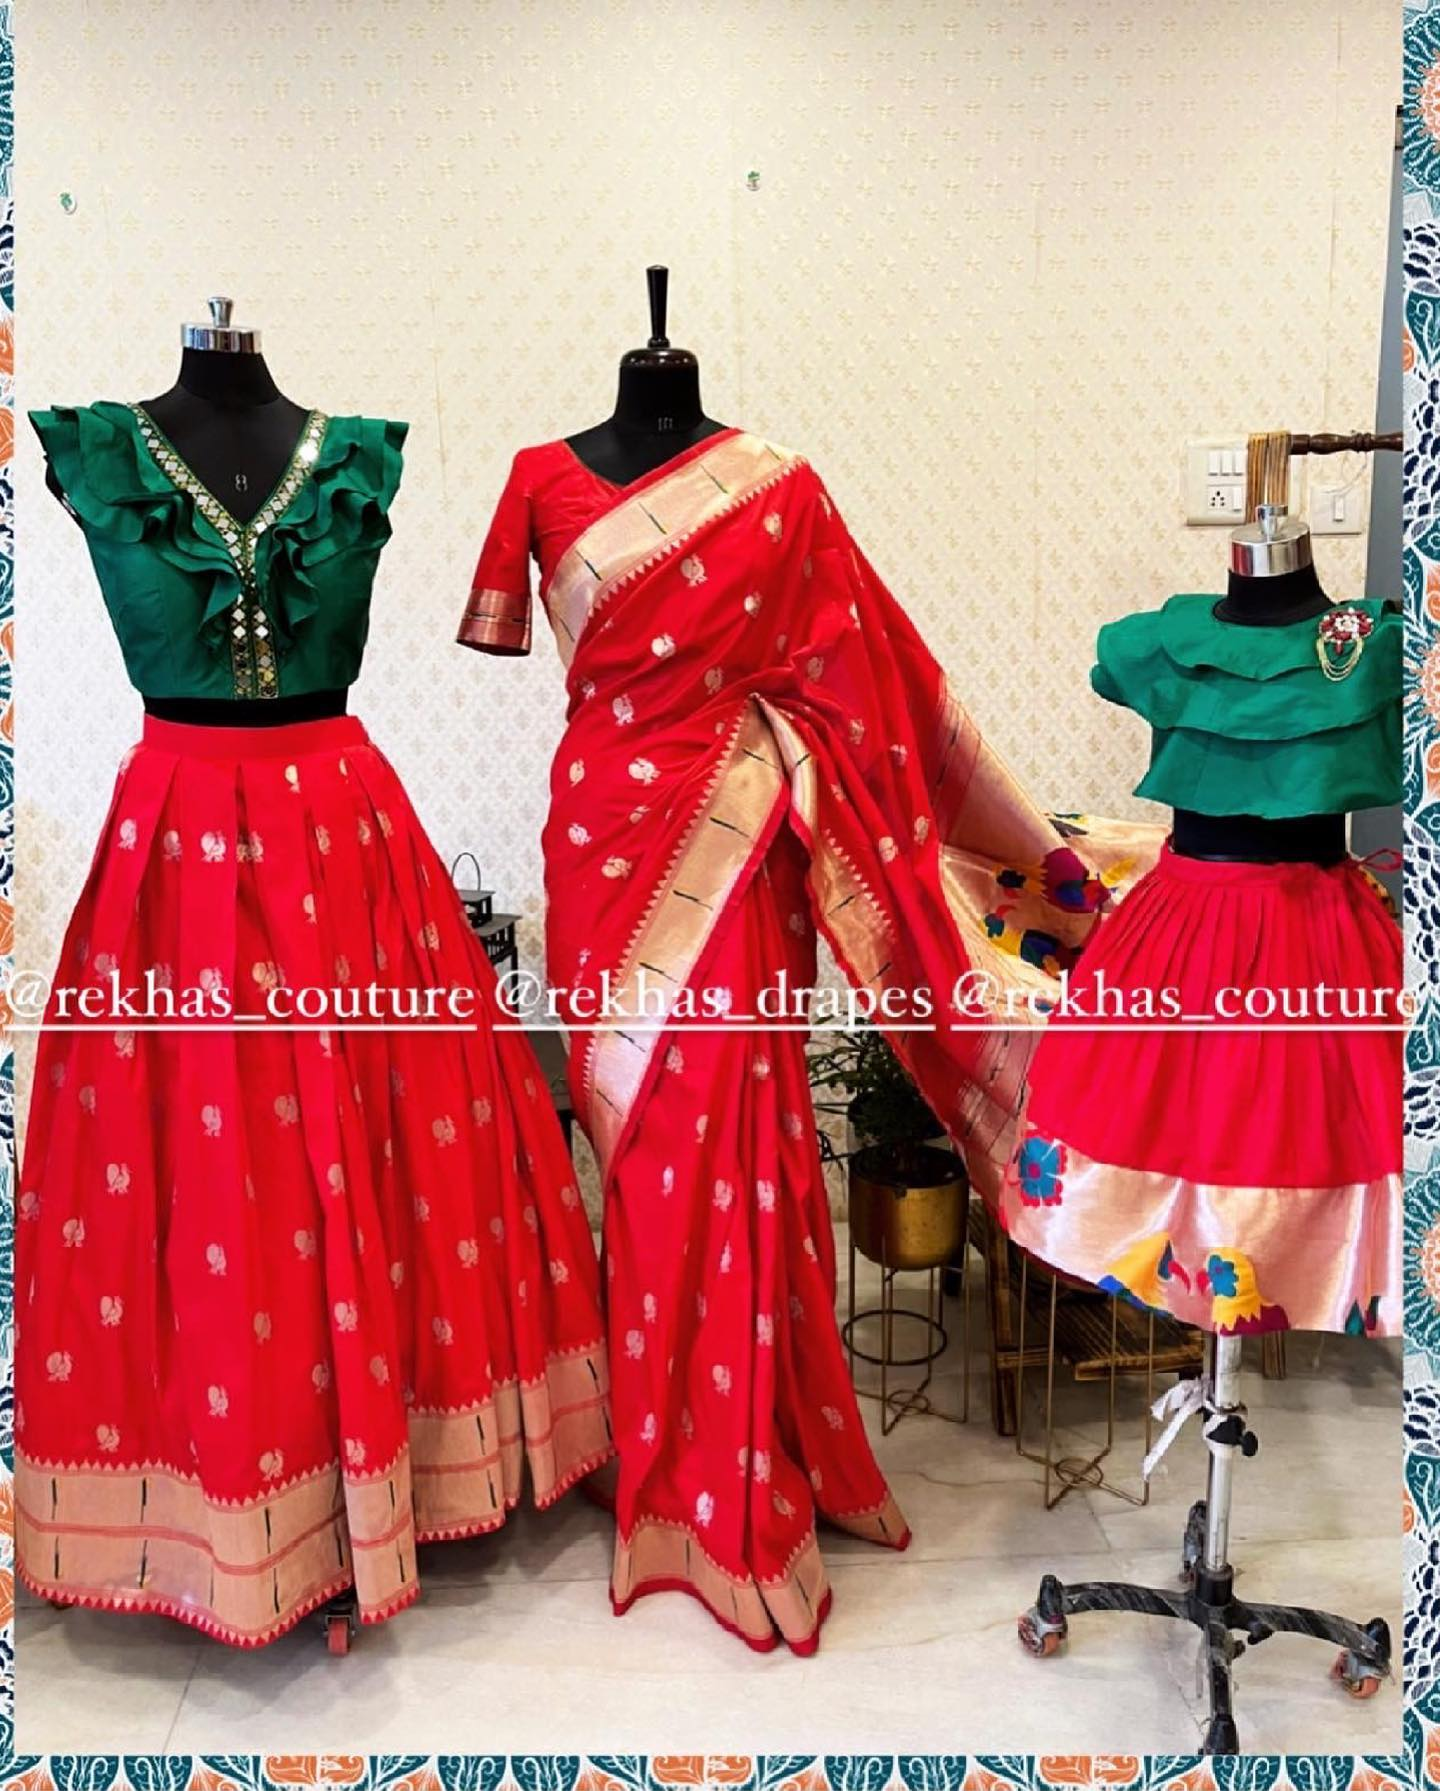 Stunning paithani style mom and daughter out fit. 2021-06-23